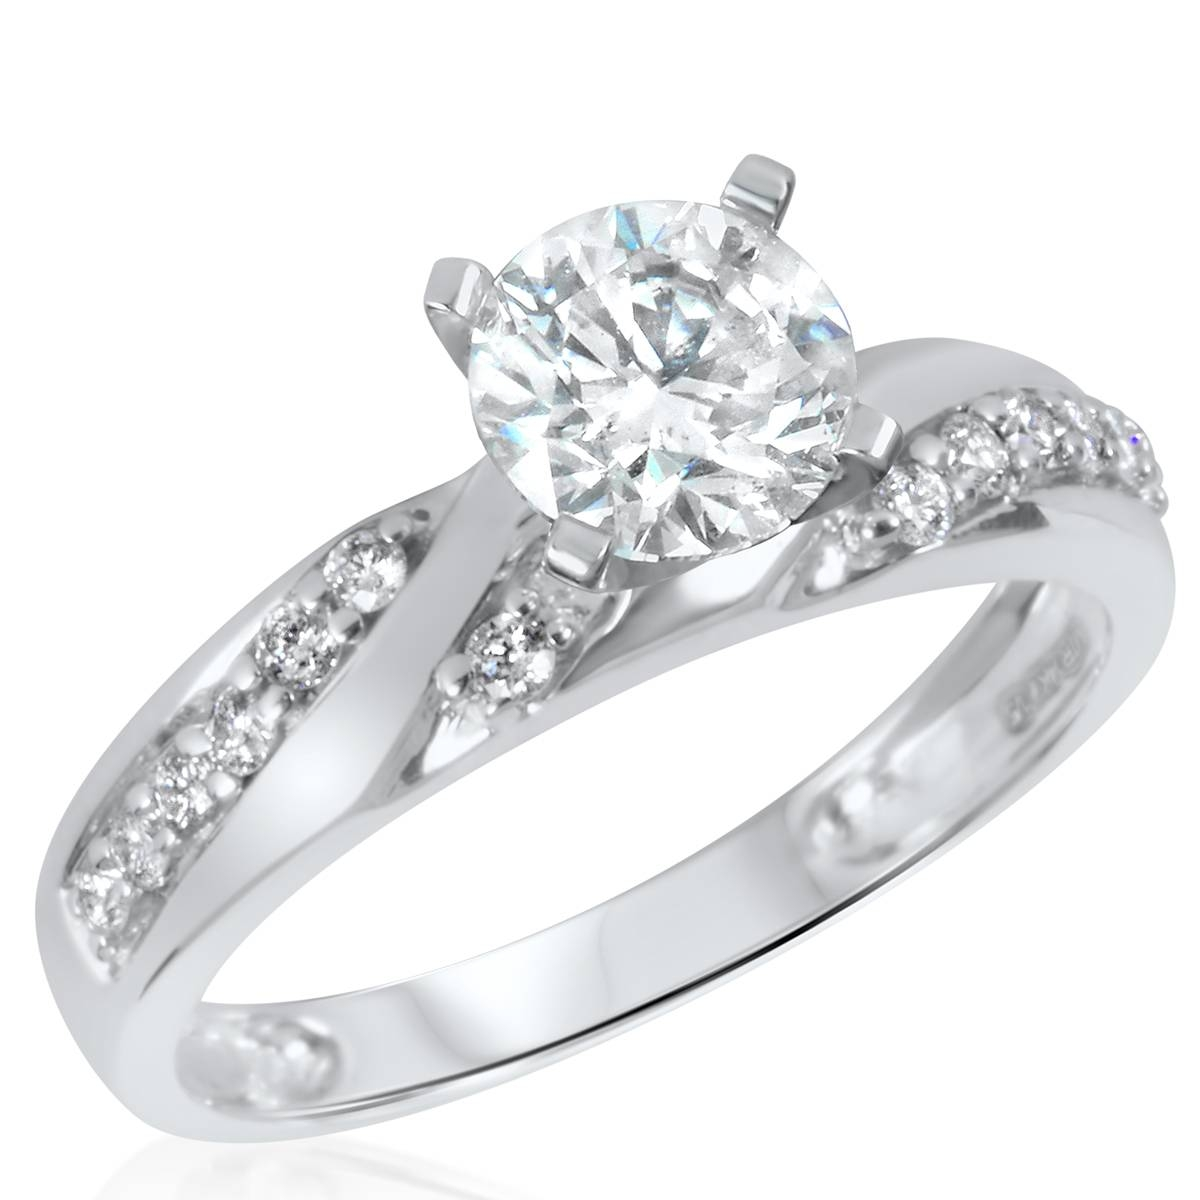 Wedding Rings : Cheap Bridal Wedding Ring Sets Affordable Intended For Cheap Diamond Wedding Bands (View 12 of 15)